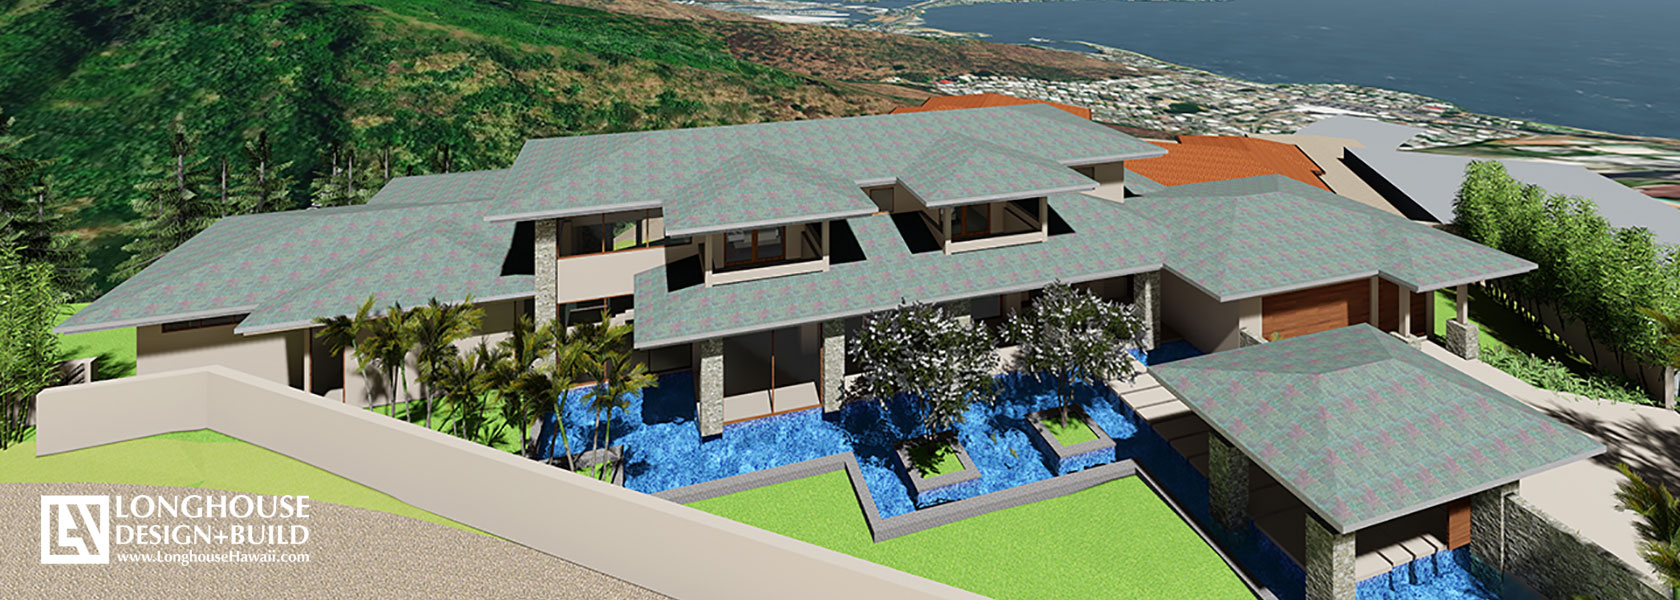 Mountain Residence - Birdseye View Architect rendering Hawaii Honolulu Hills